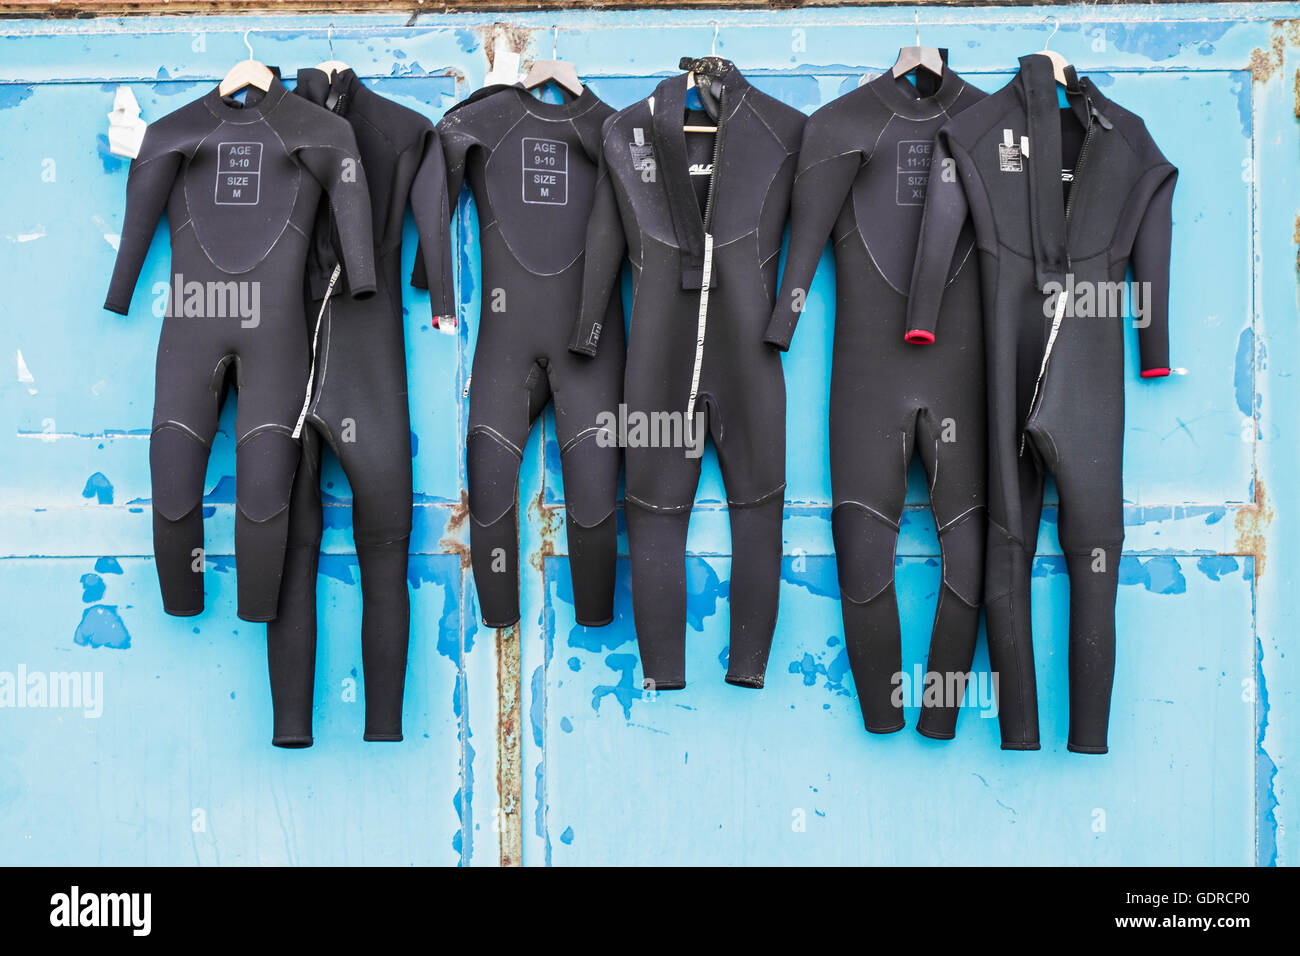 Wet suits drying against a distressed blue and rusted door. - Stock Image